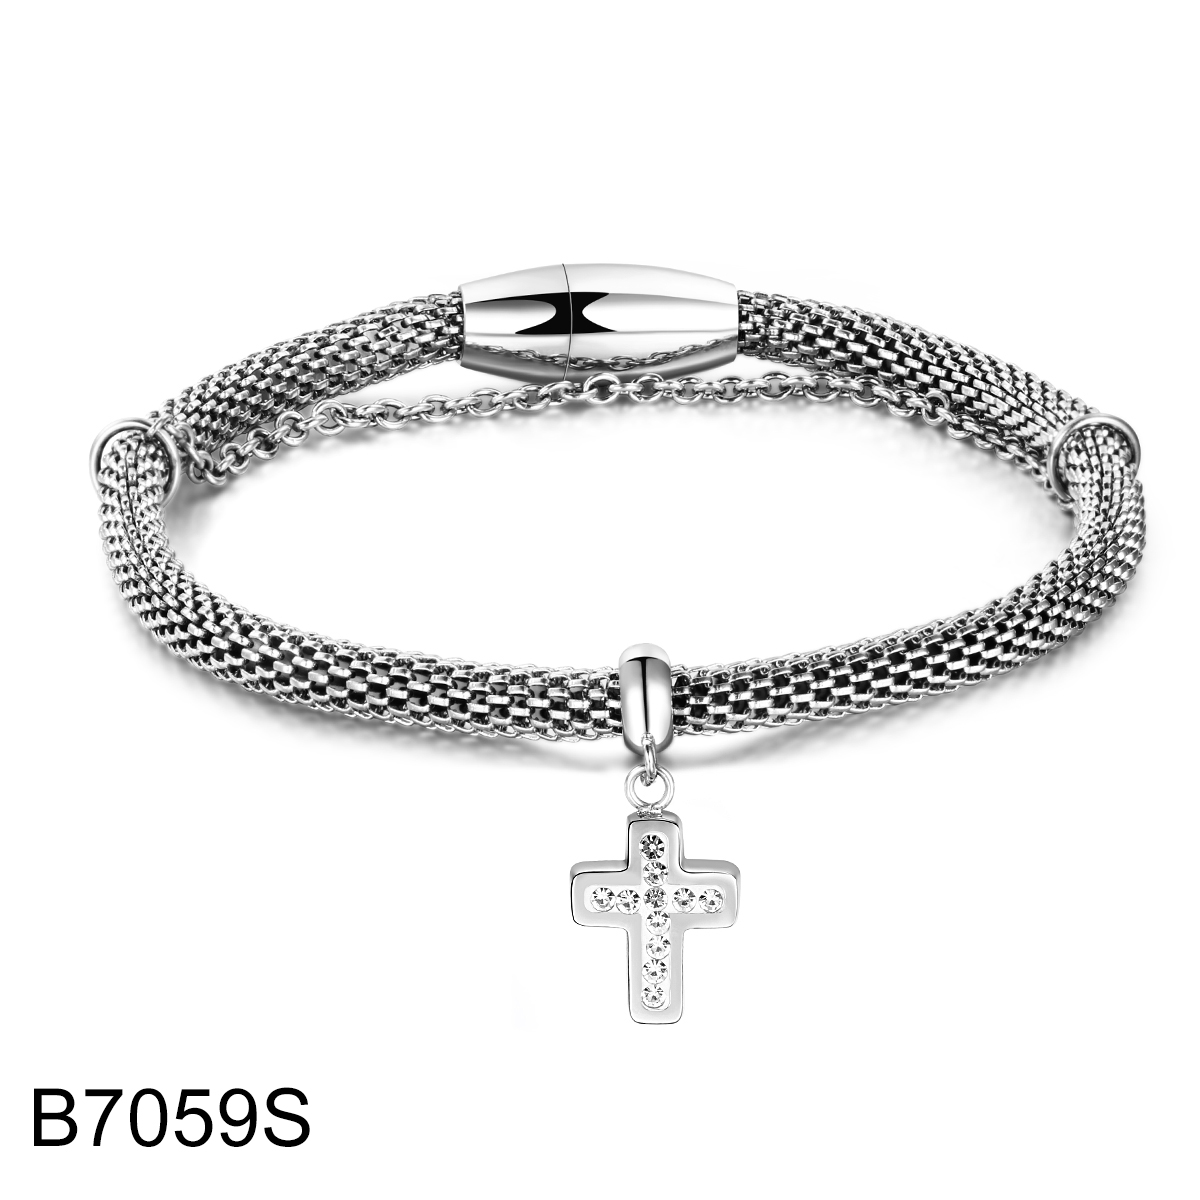 B7059S sliver double chain w...